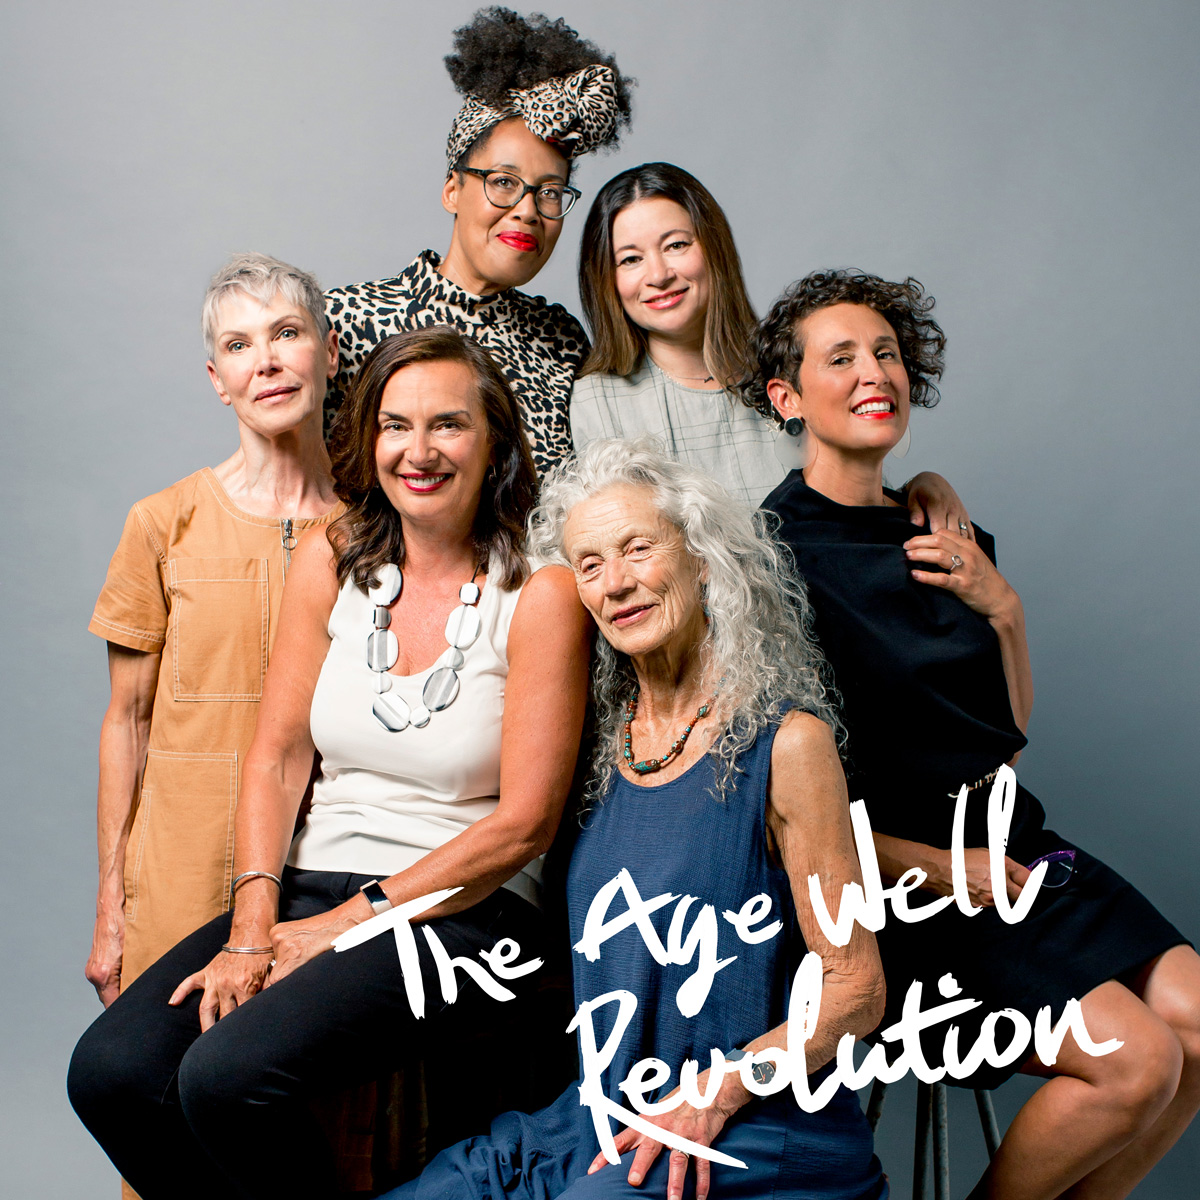 NYR-AGE-WELL-REVOLUTION-GROUP.jpg